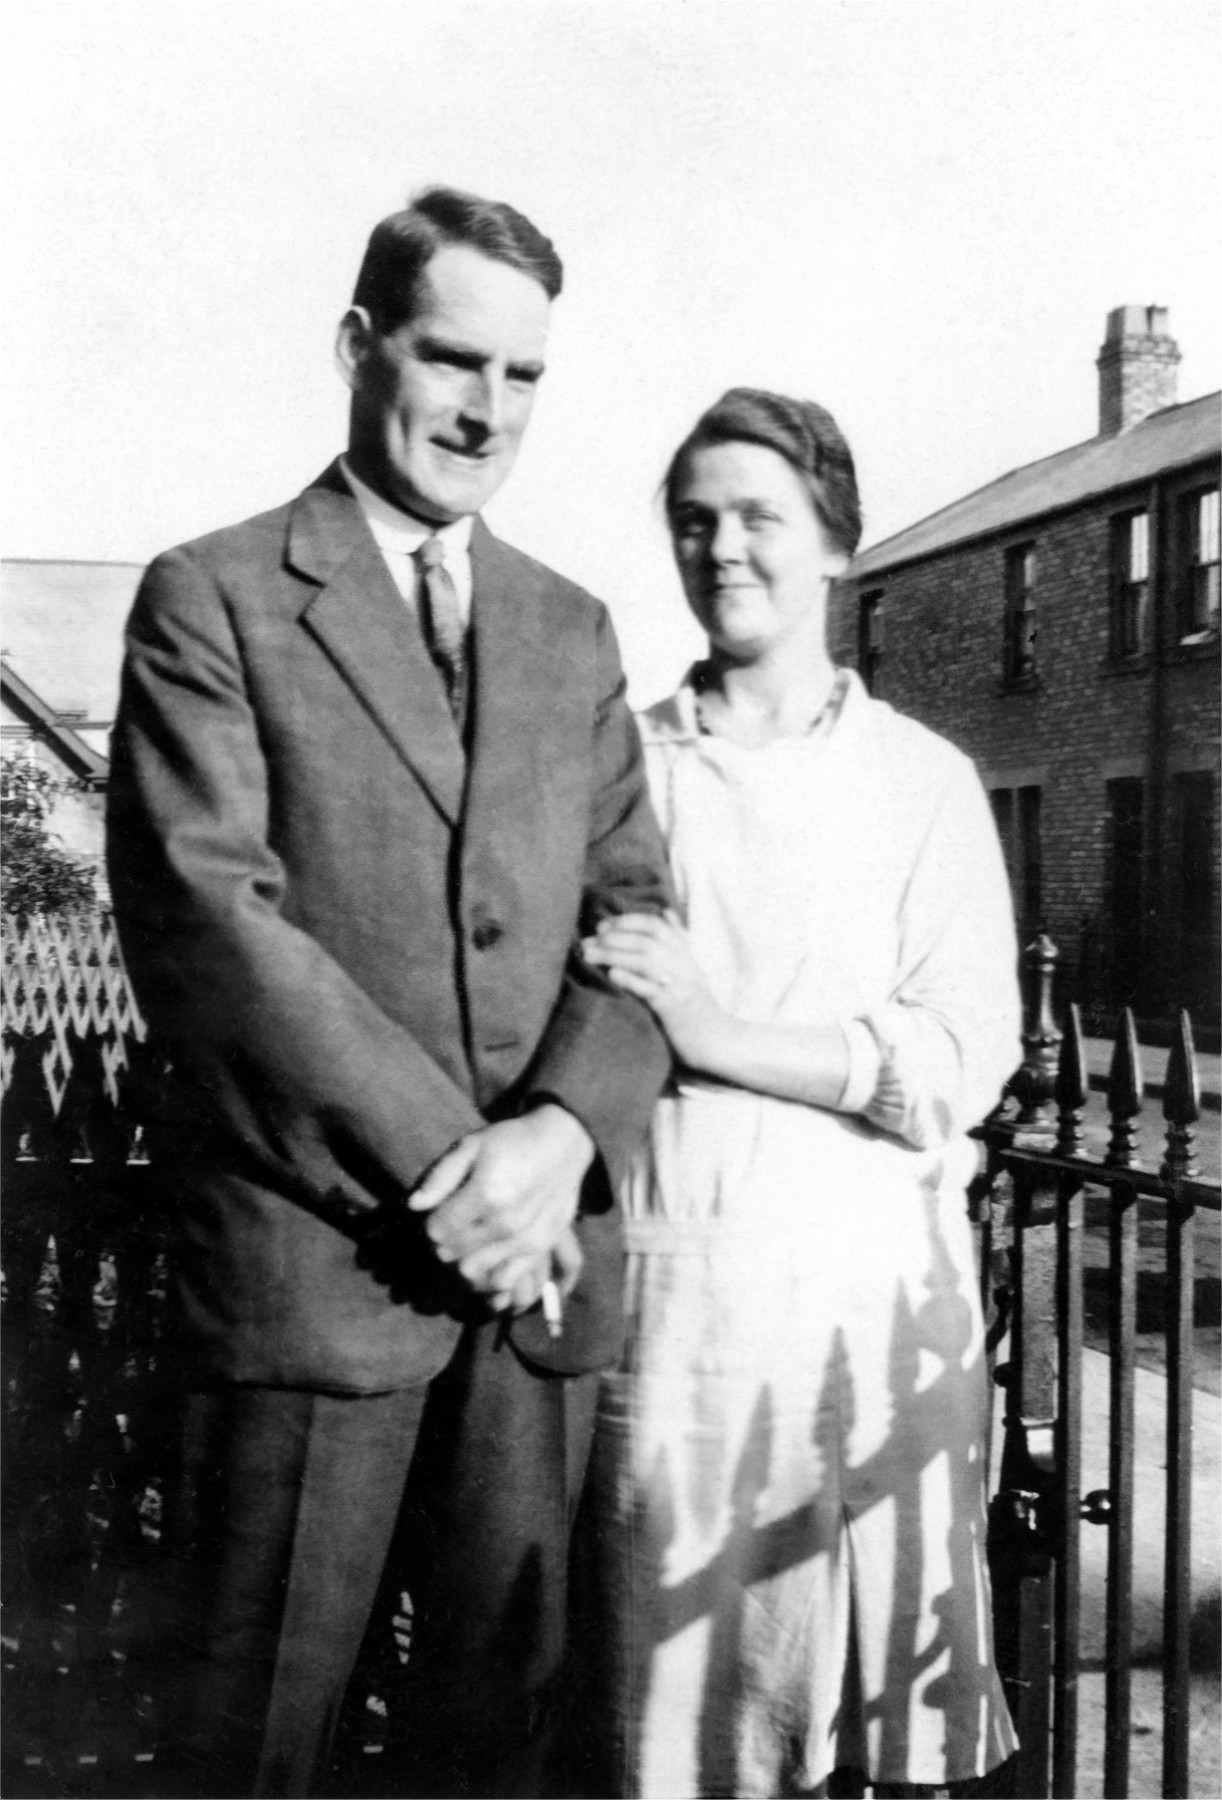 John and Florence Weallans - George's parents (1920s)